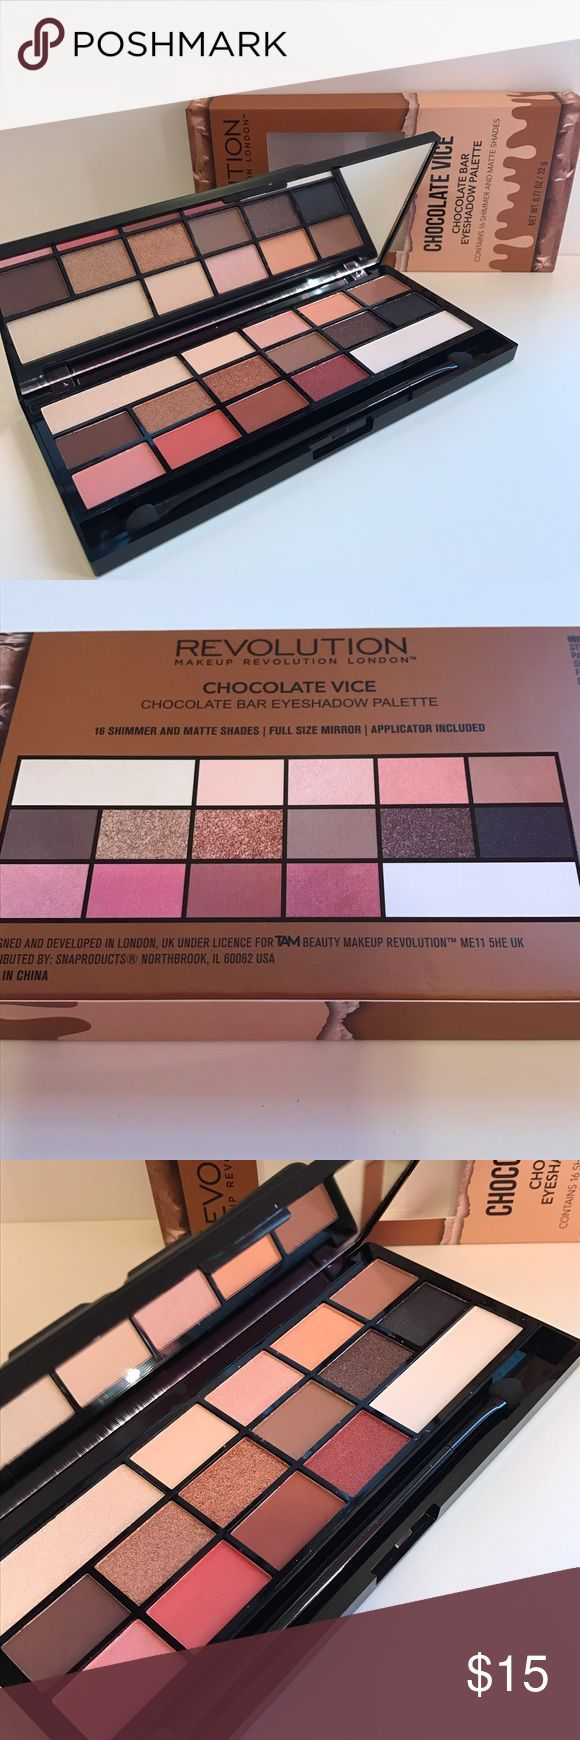 """Makeup Revolution """"Chocolate Vice"""" palette Makeup Revolution """"Chocolate Vice"""" palette. 16 shimmer and matte shades. This is their version of the Too Faced Chocolate bars. Brand new, never used or swatched. No trades, price firm. Makeup Revolution Makeup Eyeshadow"""